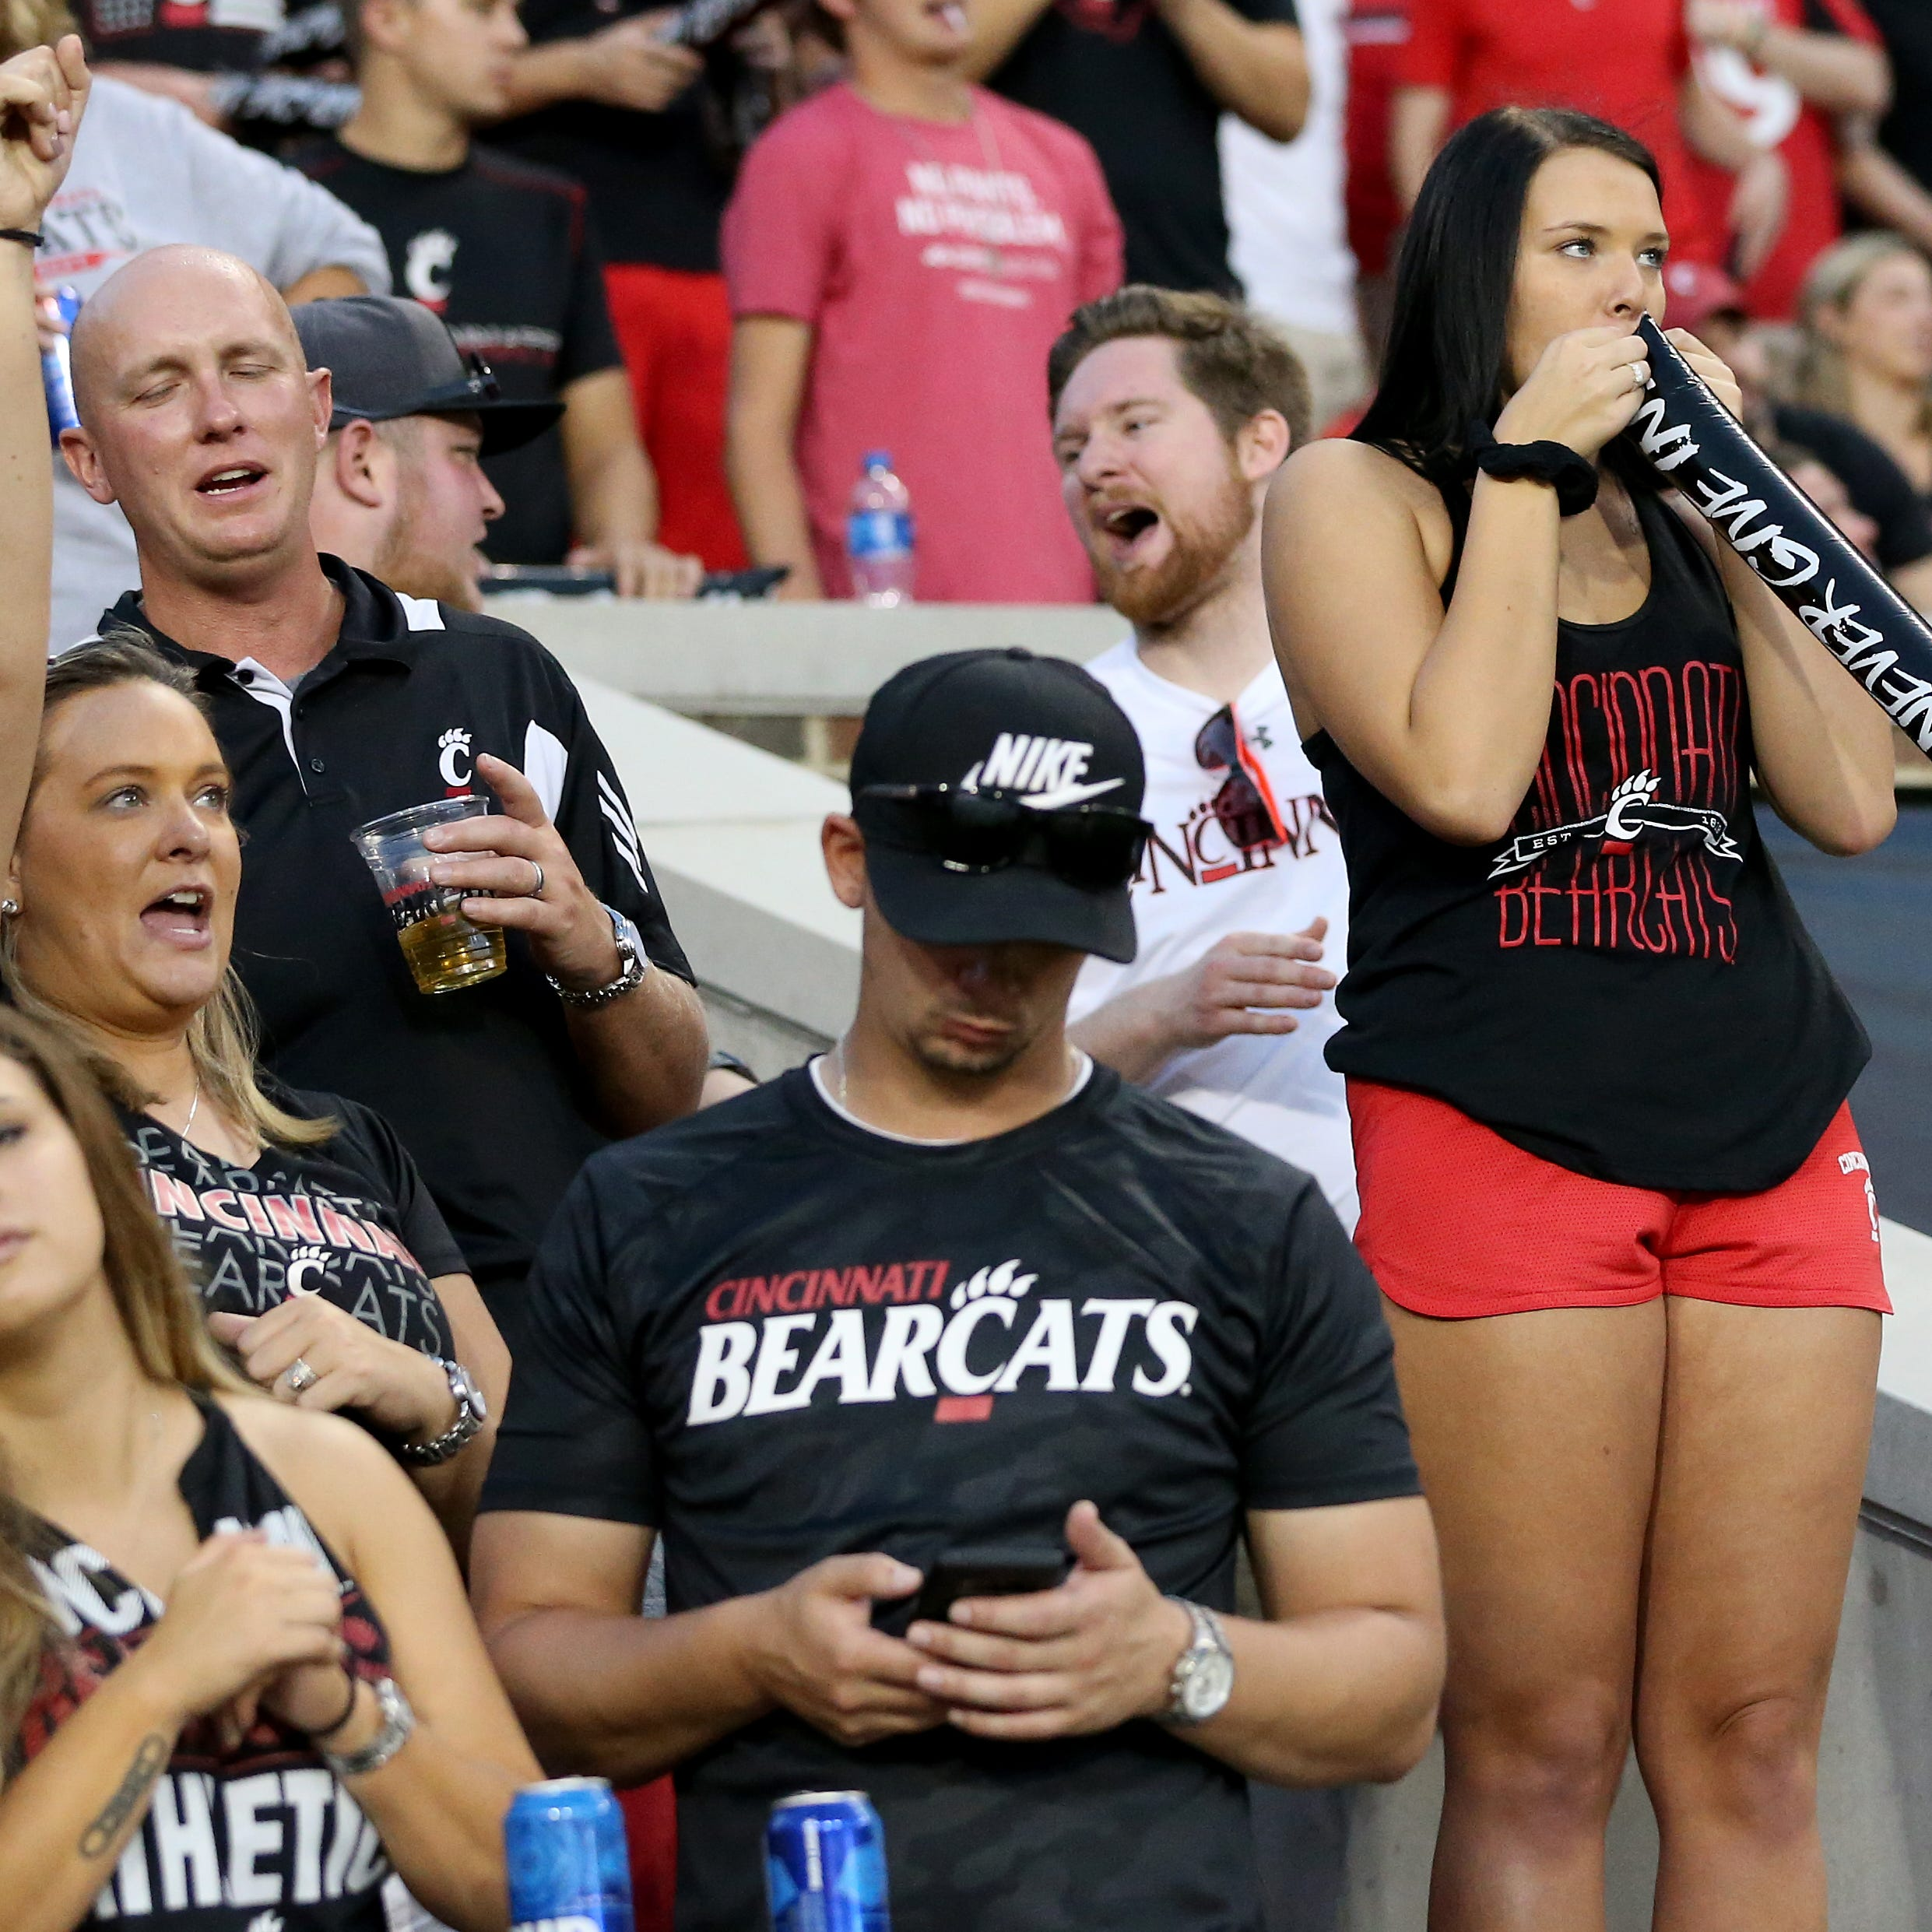 Cincinnati Bearcats on top of ESPN's College Football Fan Happiness Index again